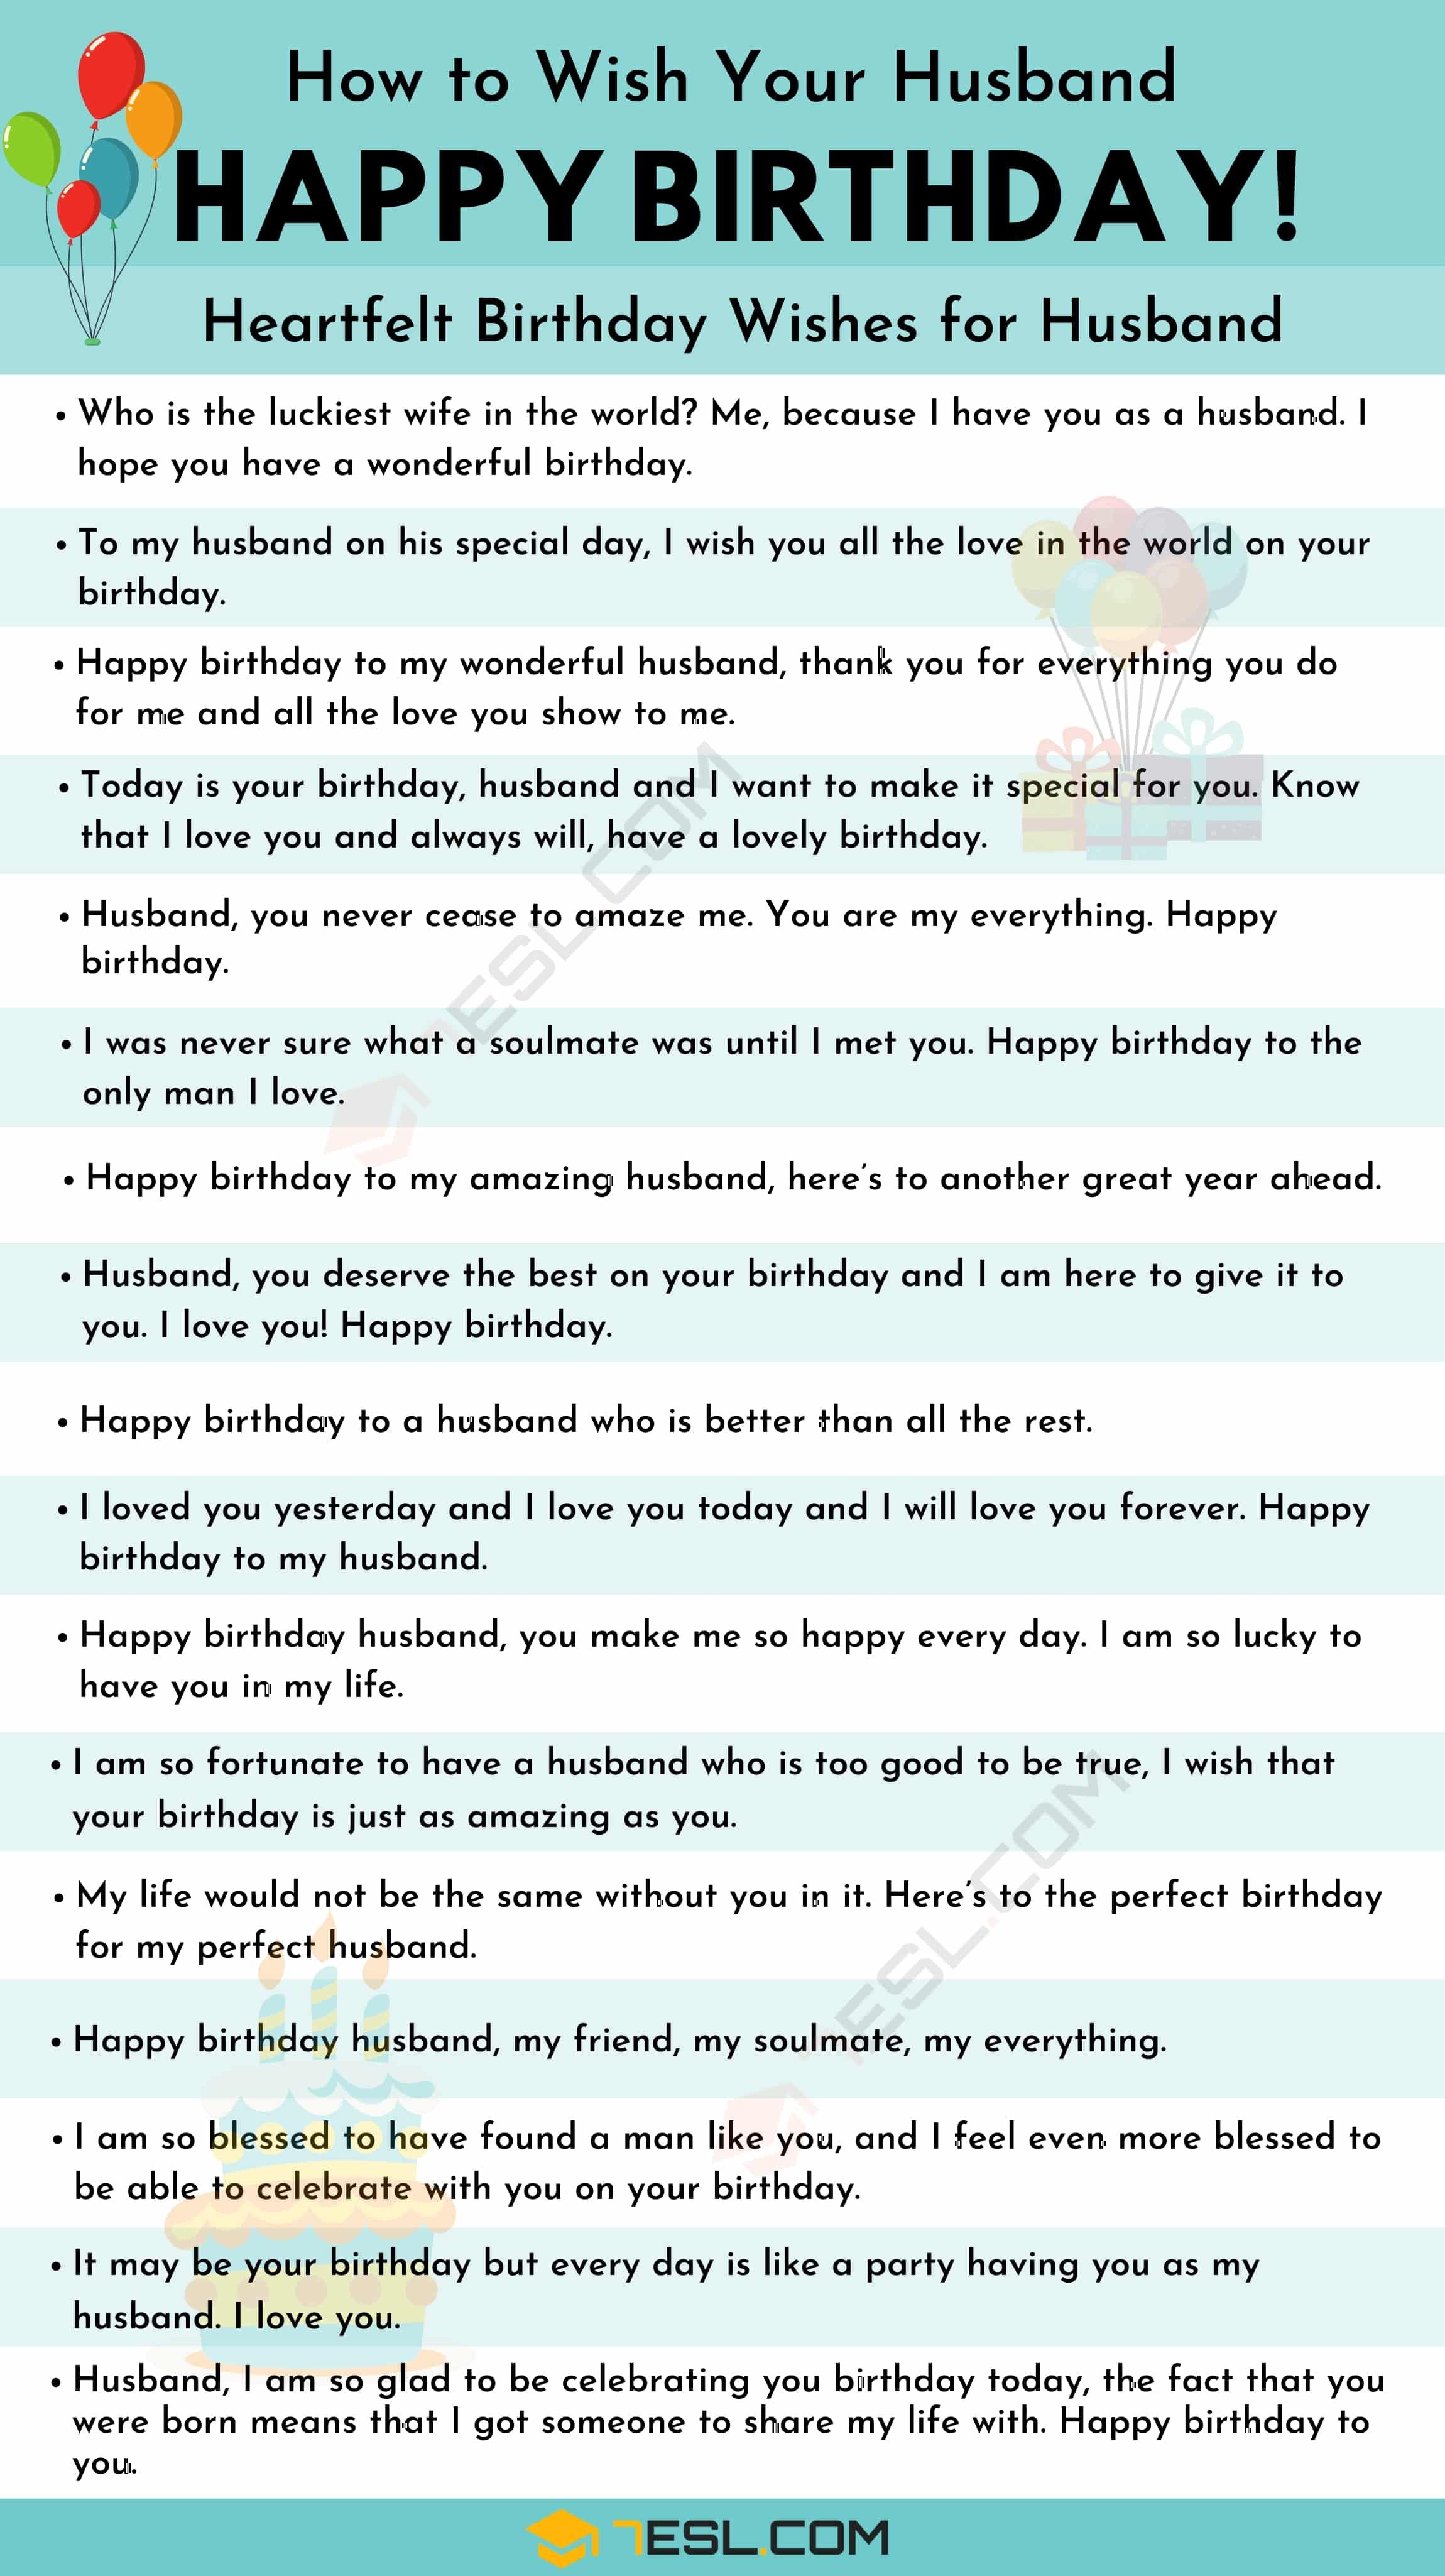 List of birthday wishes for your husband